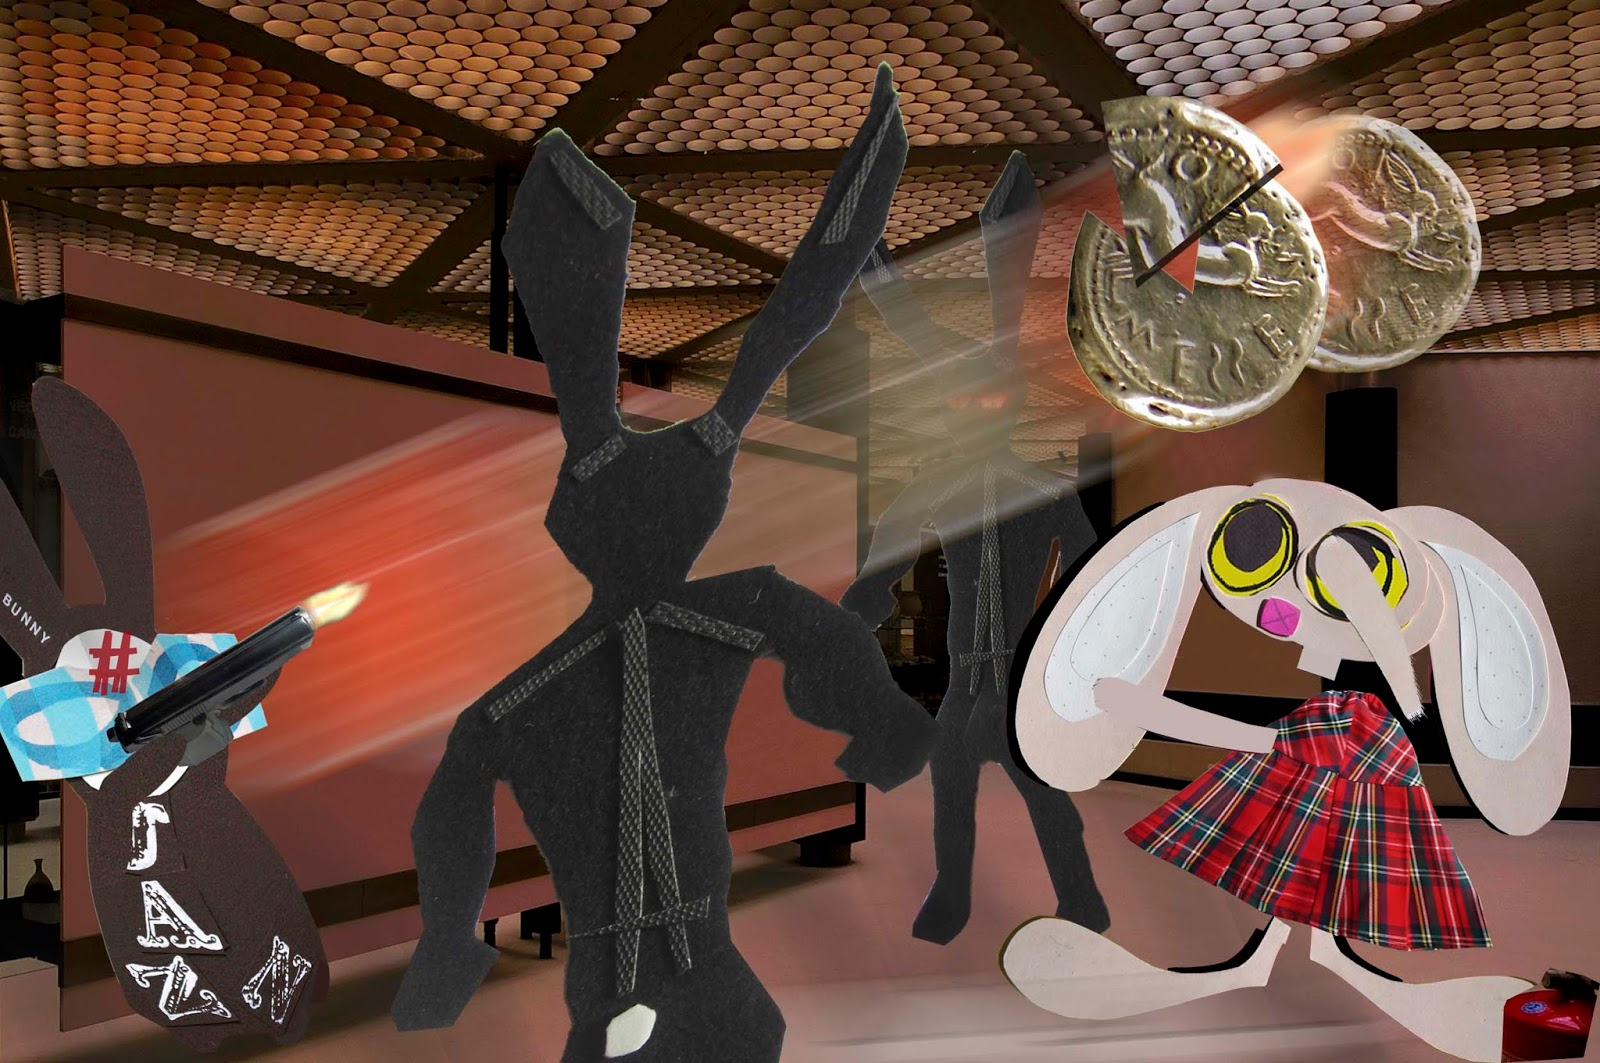 8. The Wabbit and the Coveted Coin